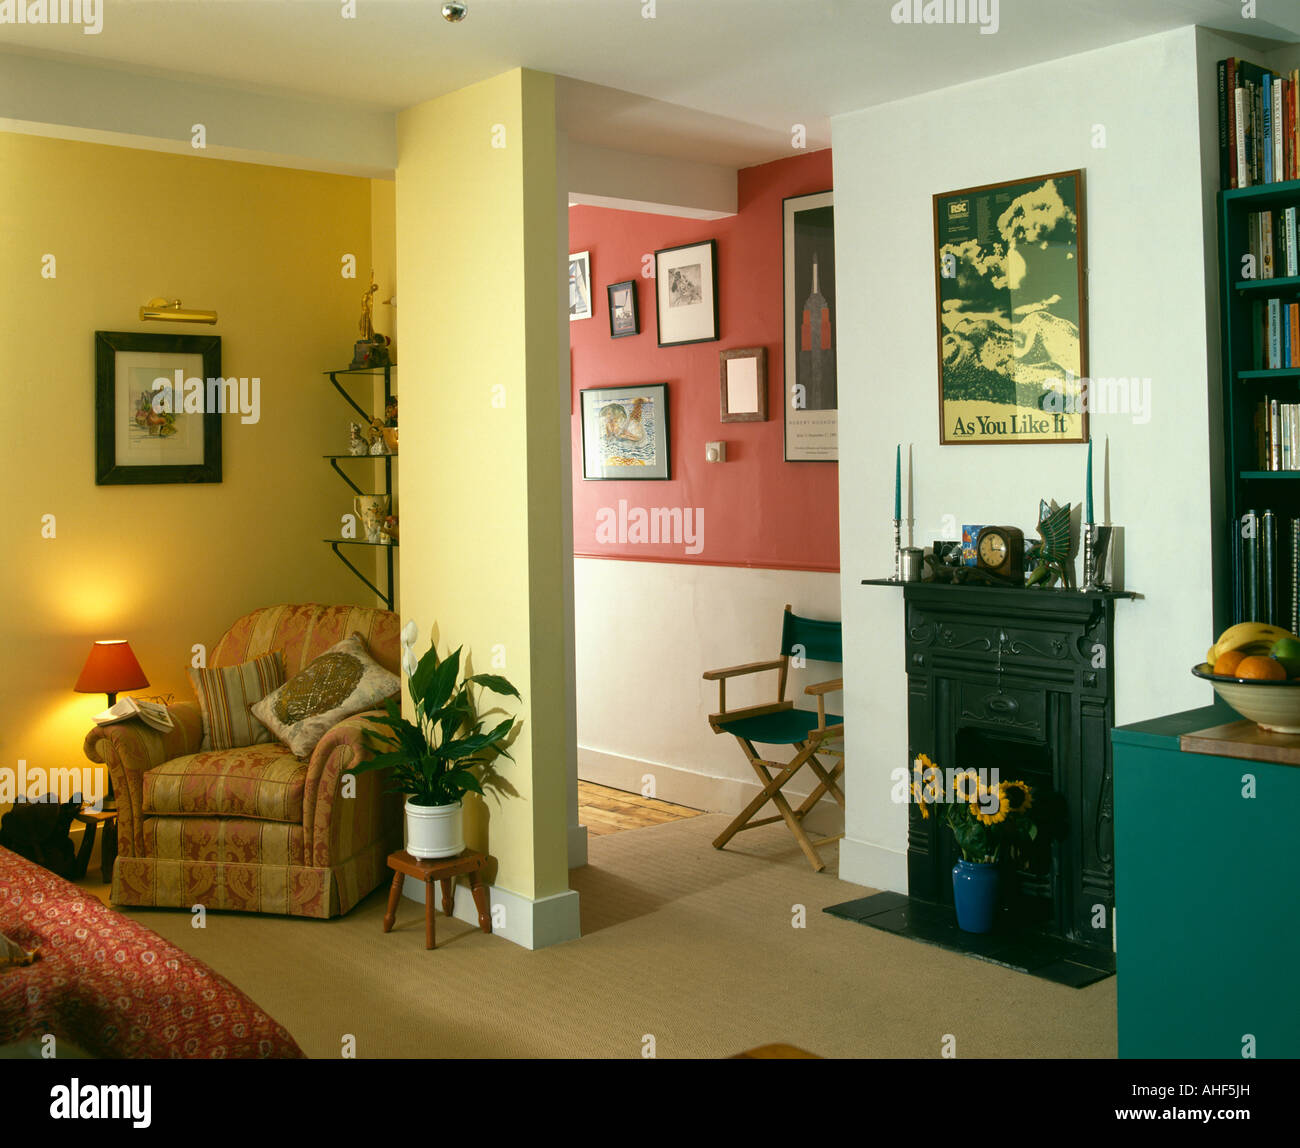 Armchair in corner of yellow sittingroom with fireplace beside doorway and view of red hall - Stock Image